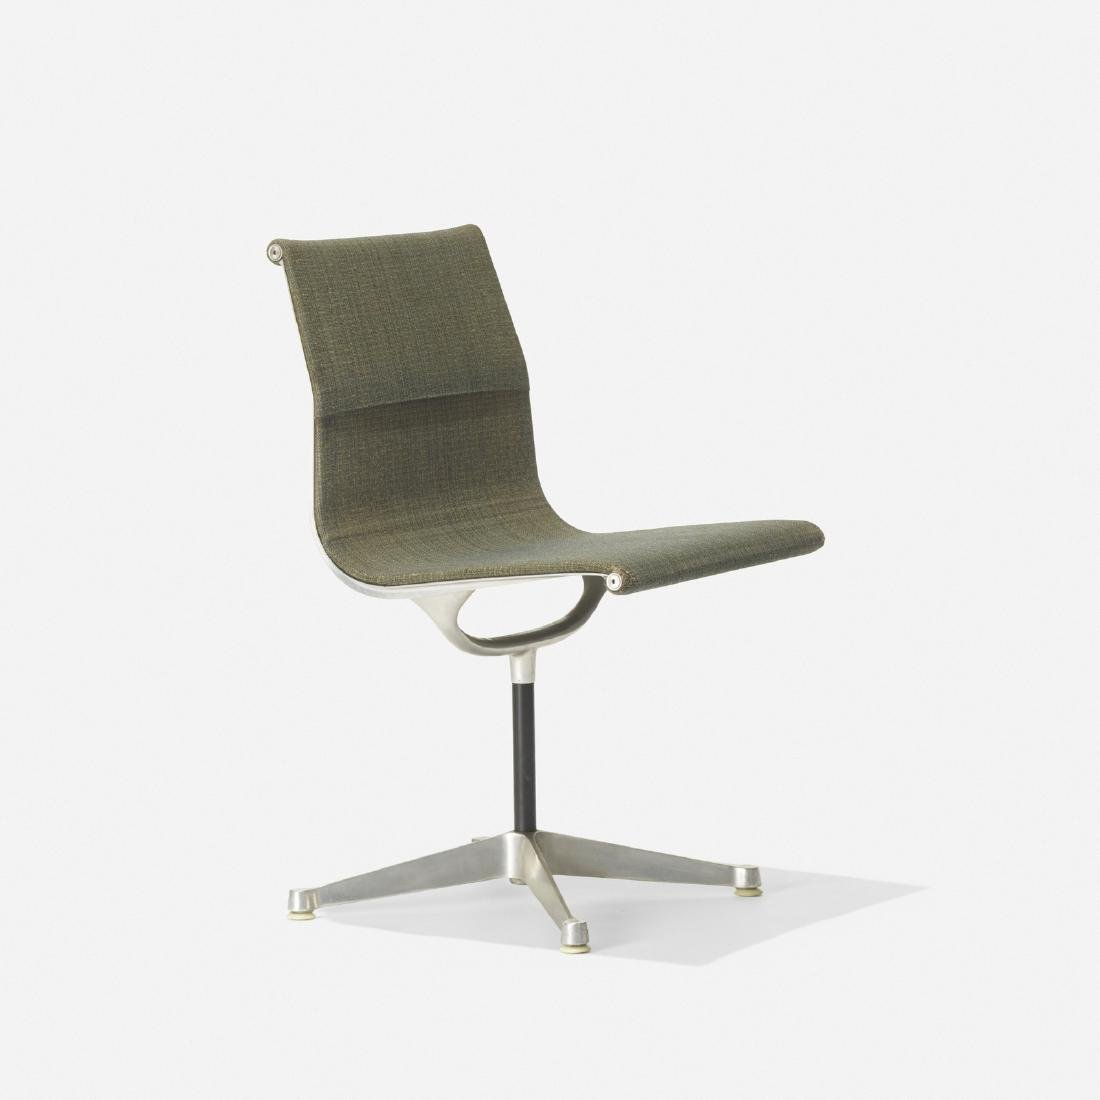 Charles & Ray Eames, Pre-Production Aluminum chair - 2